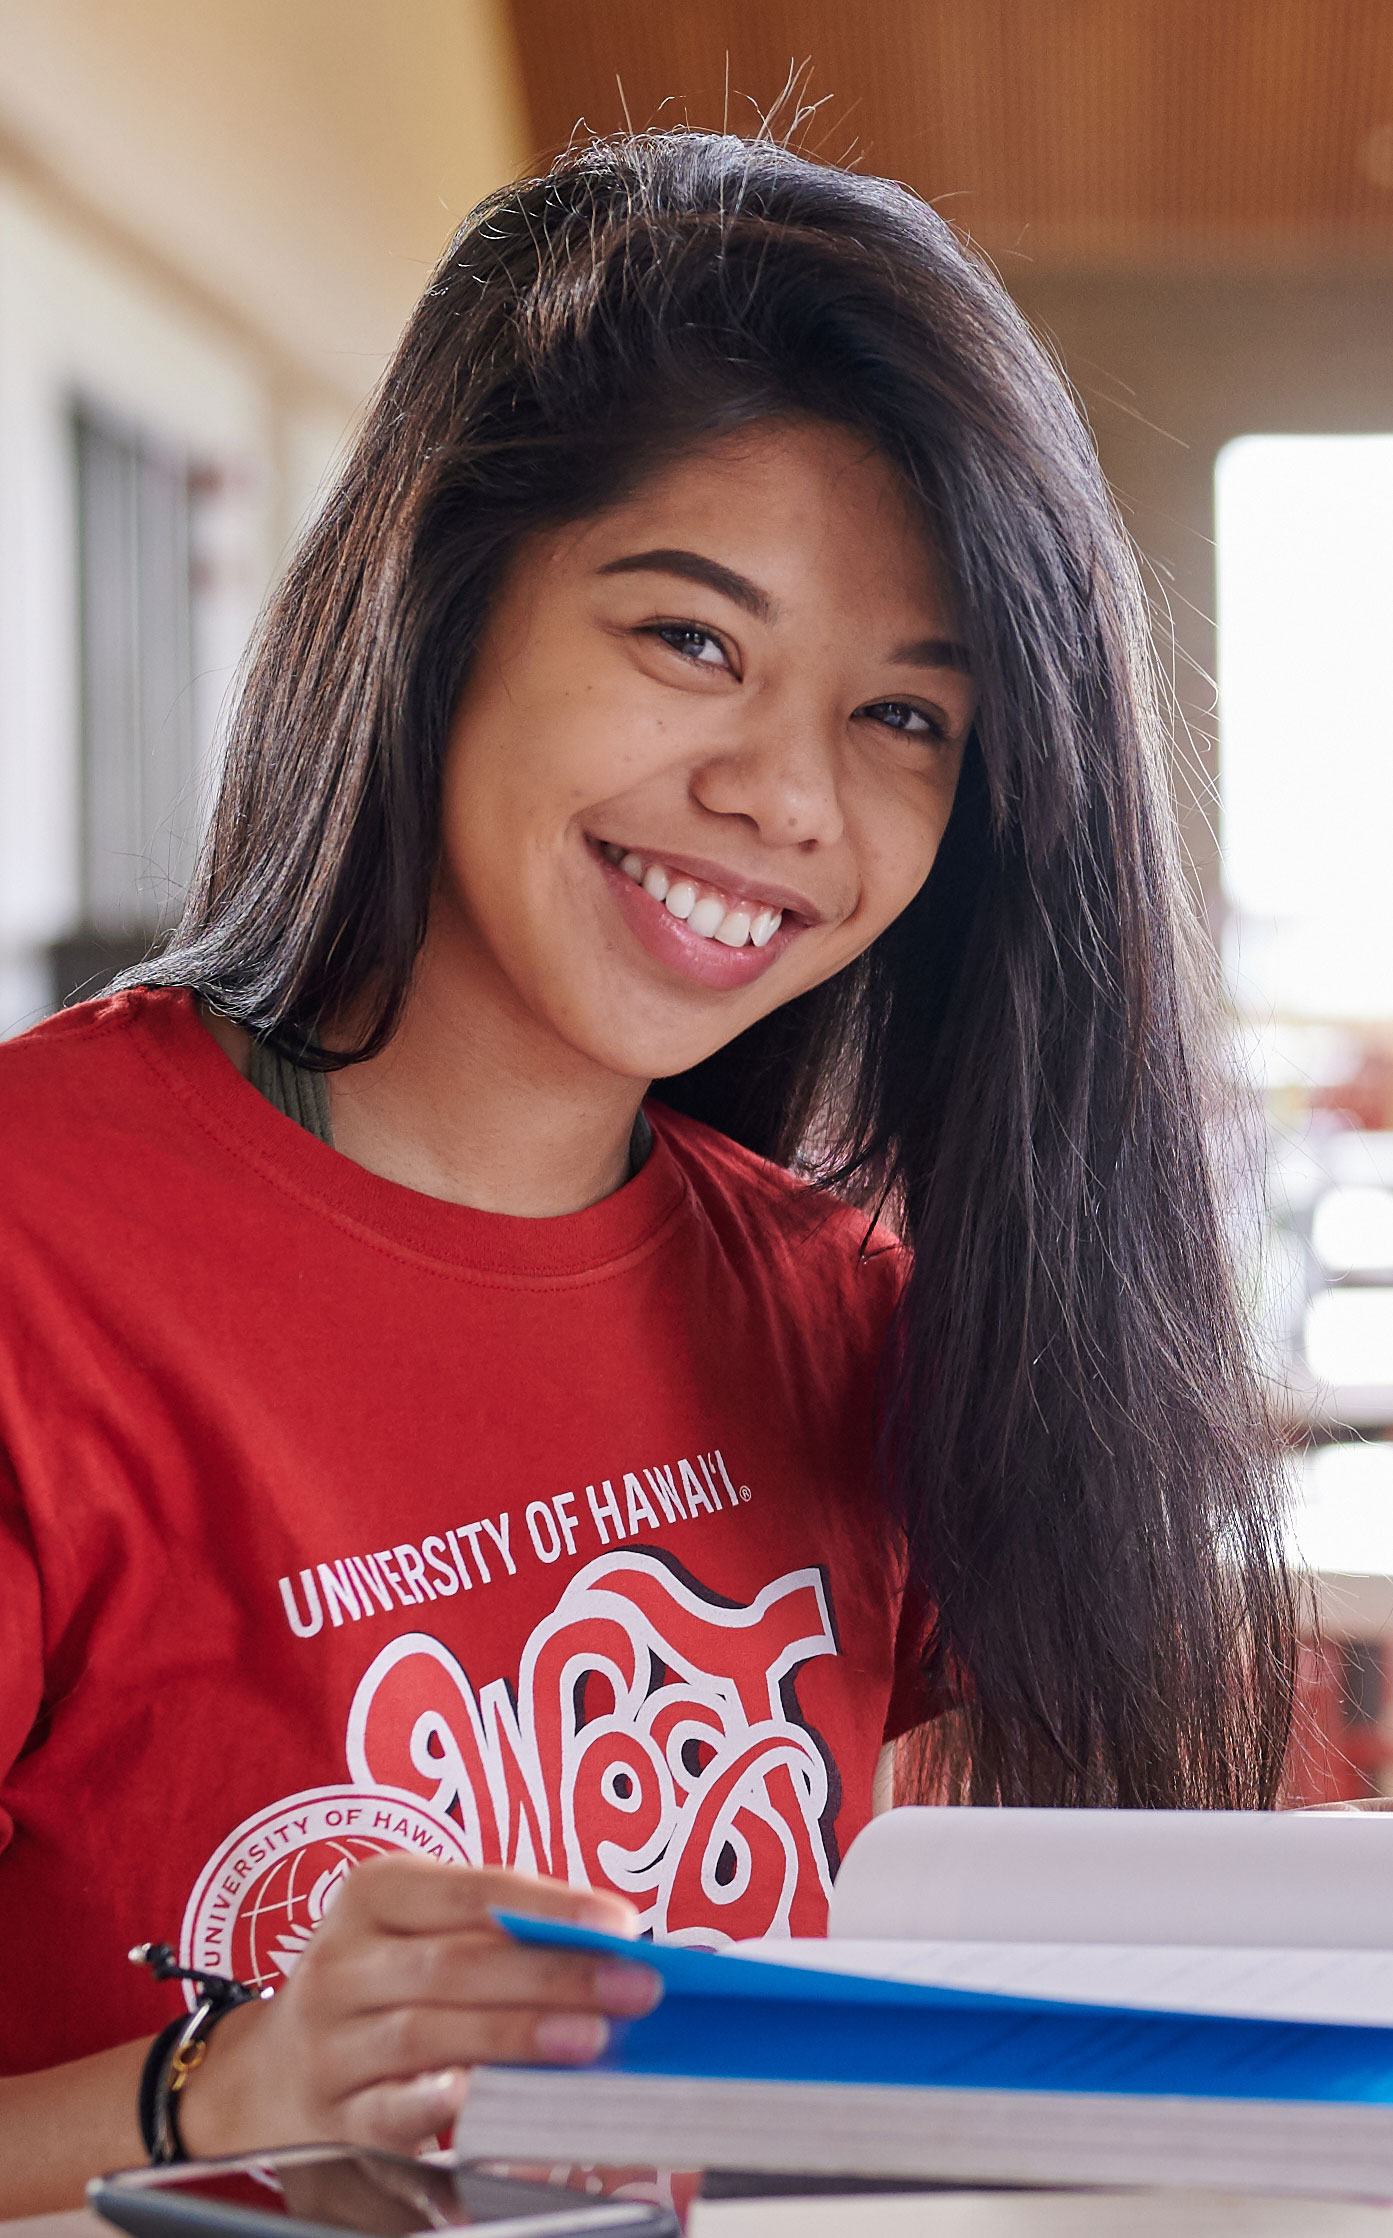 Close-up Of A Student Smiling While Sitting At A Table In The Hallway Wearing A Red T-shirt.